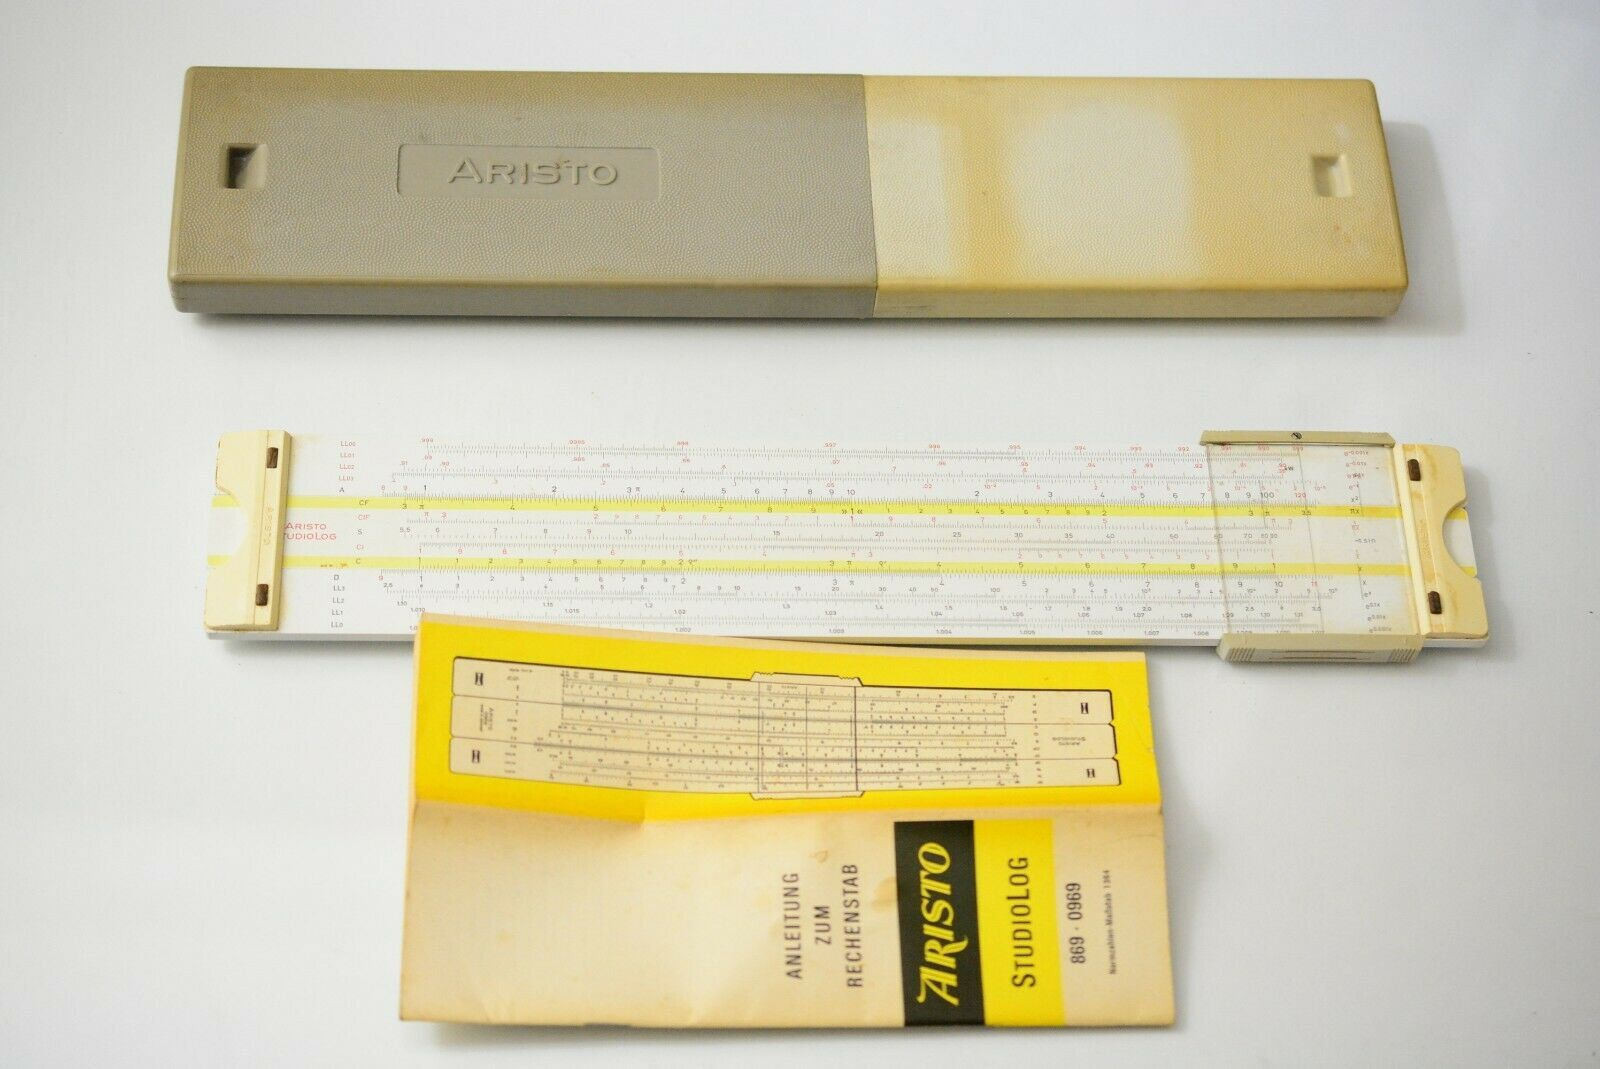 Aristo 0969 Studiolog 0969 Slide Rule. 29 Scales with Case